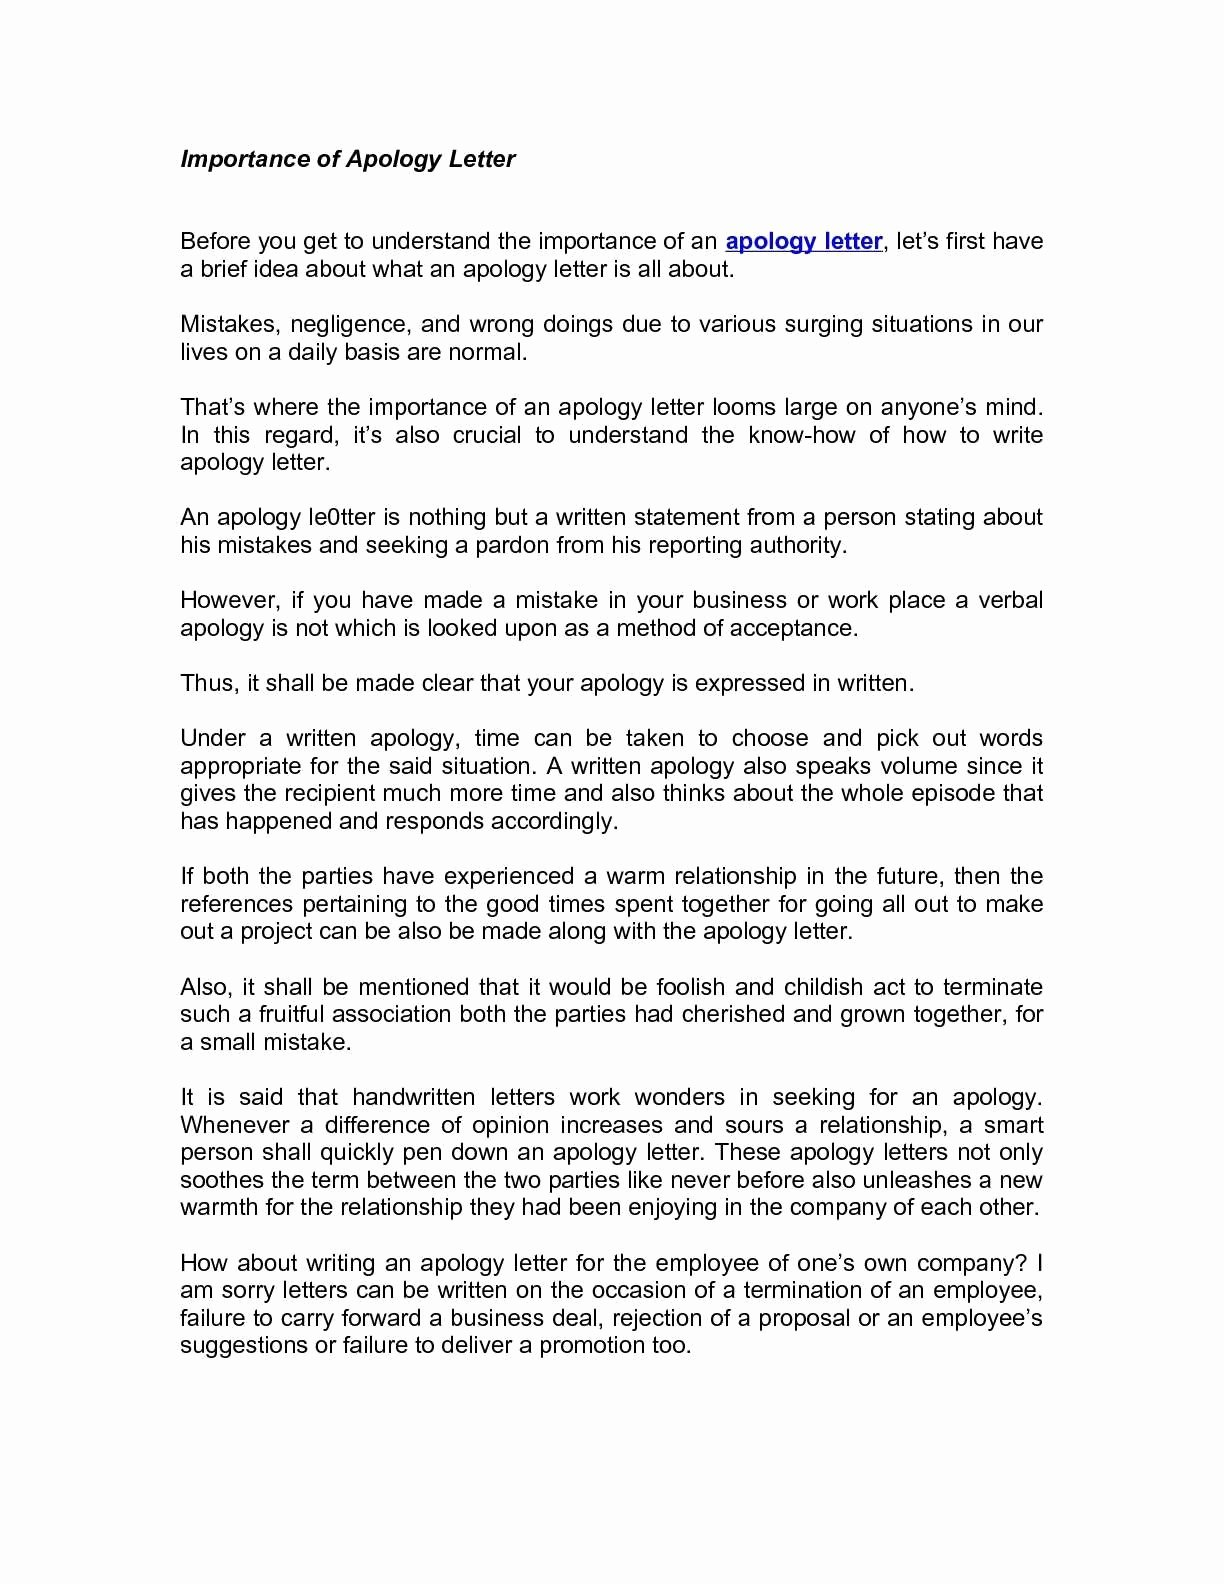 Letter for Explanation Of Mistake Made Awesome Business Apology Letter for Mistake Icebergcoworking